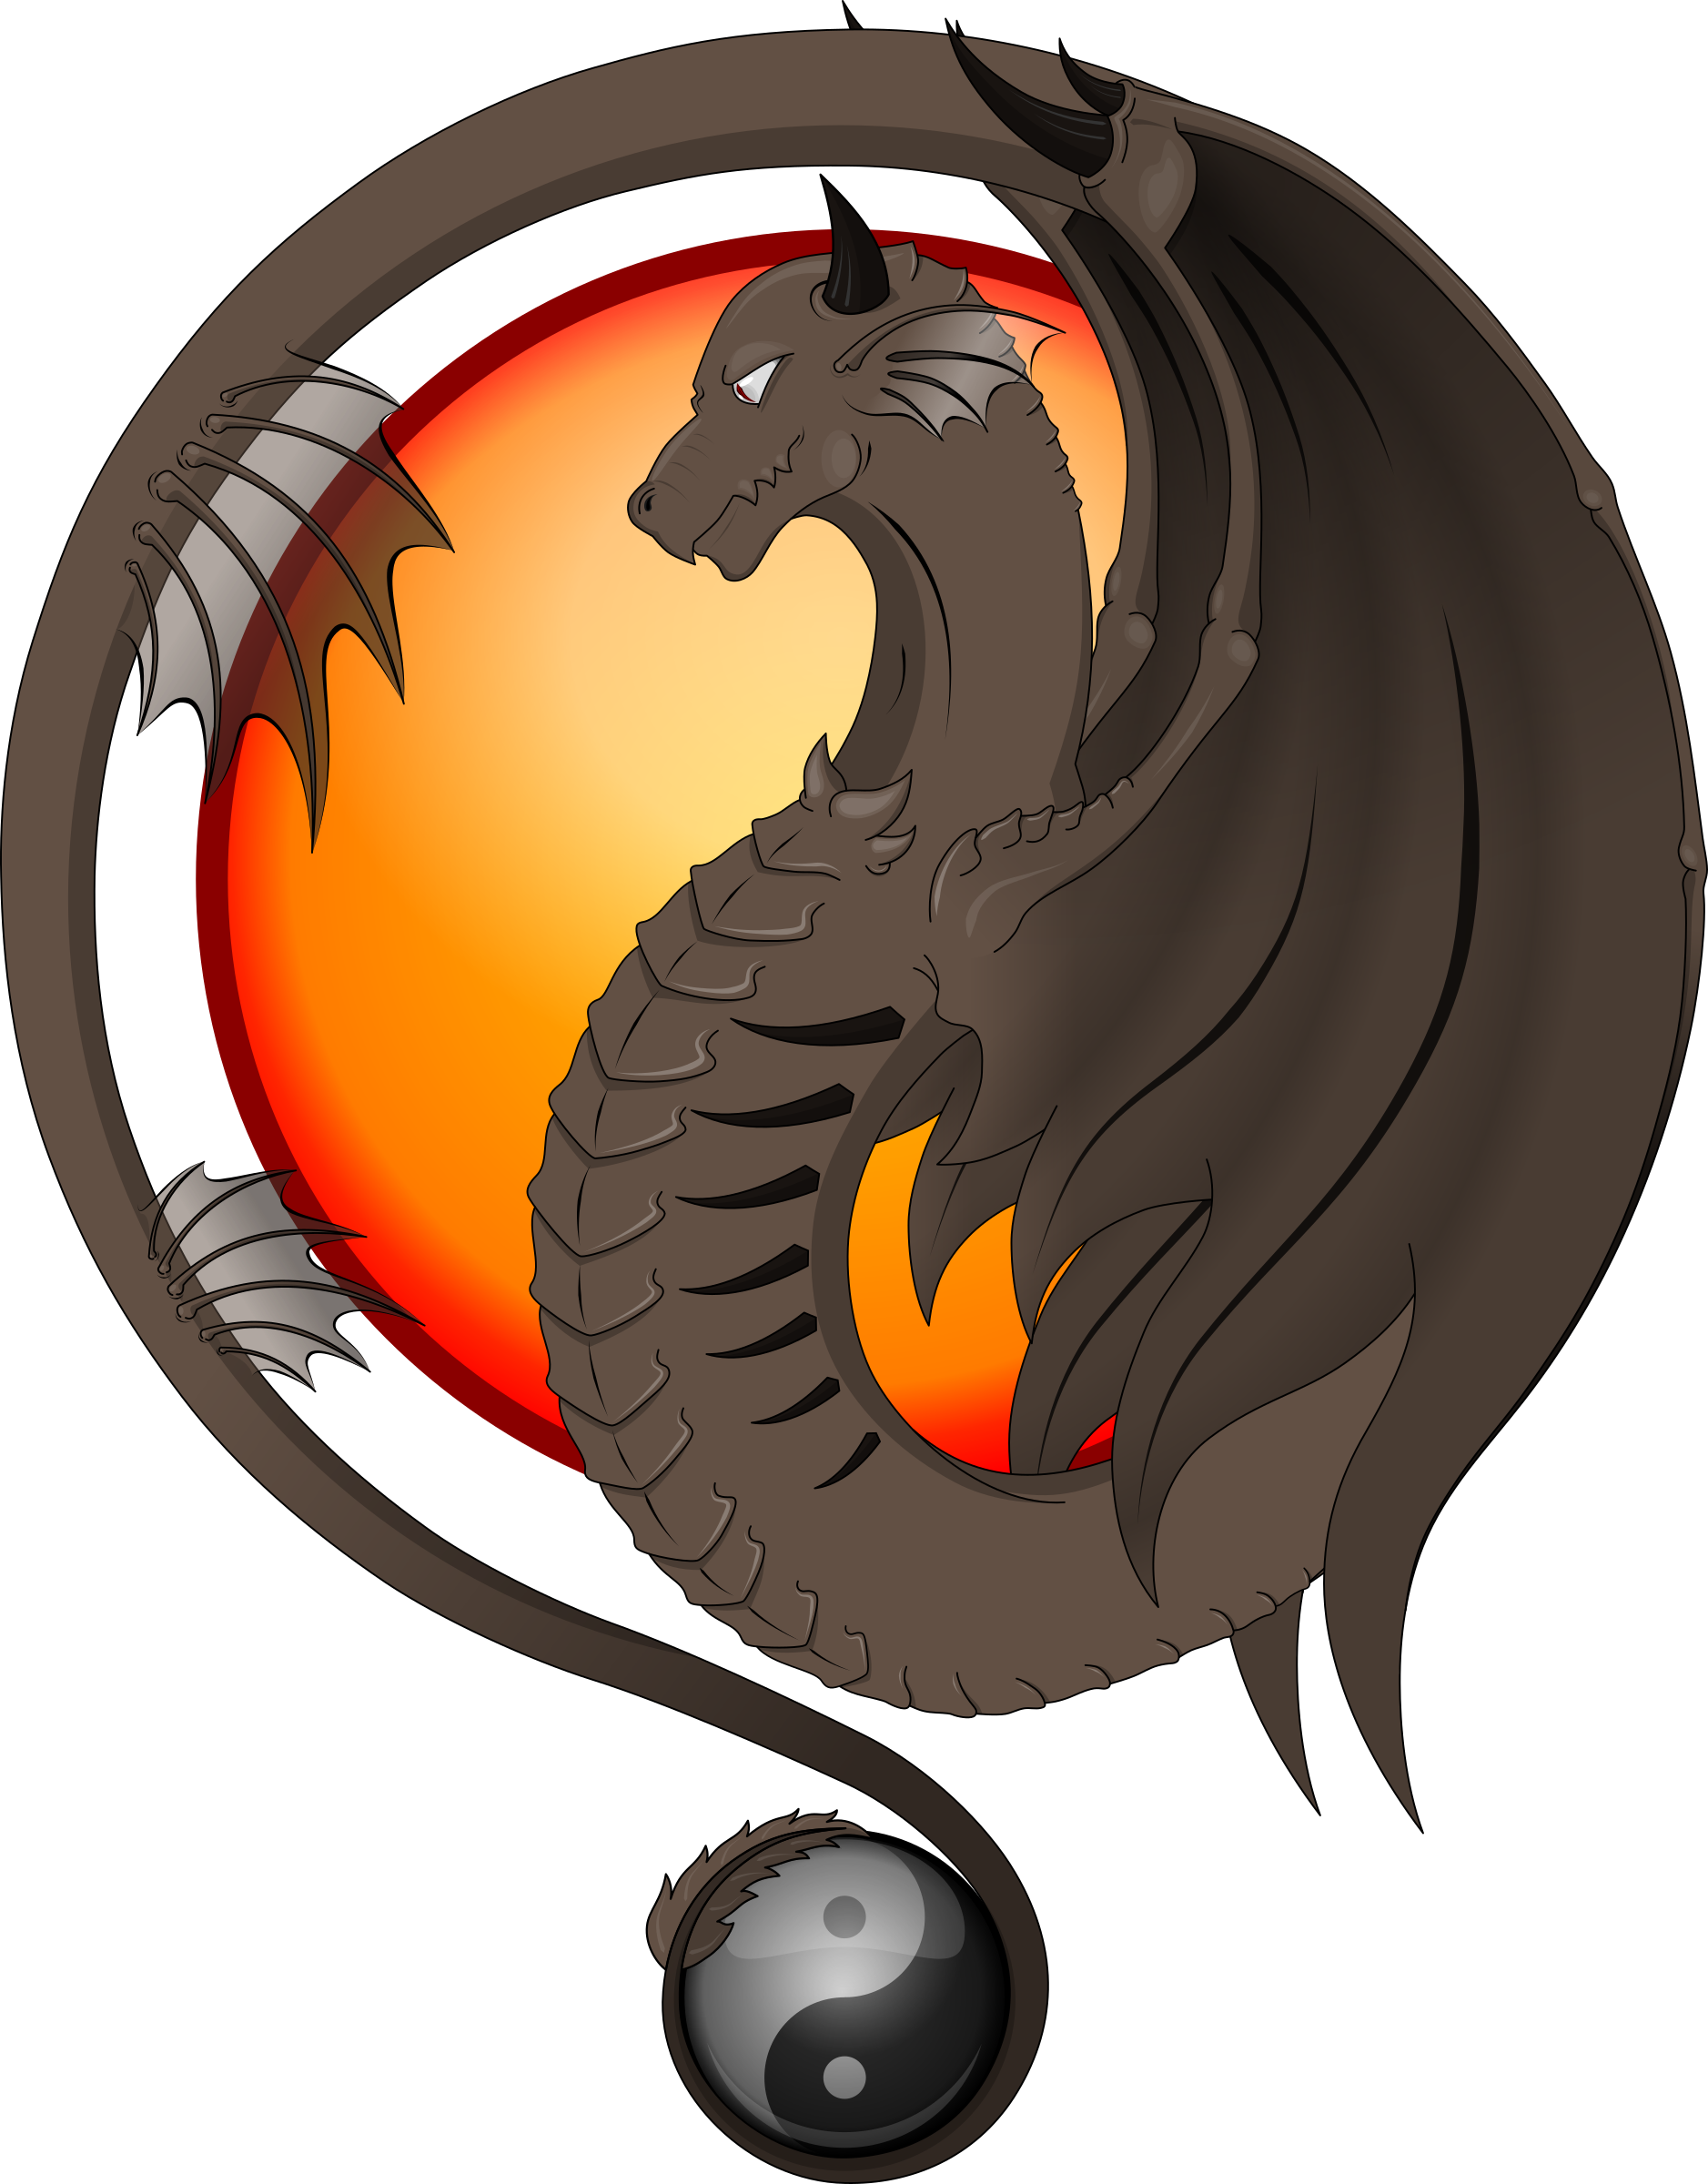 Dragon de sol by deiby_ybied